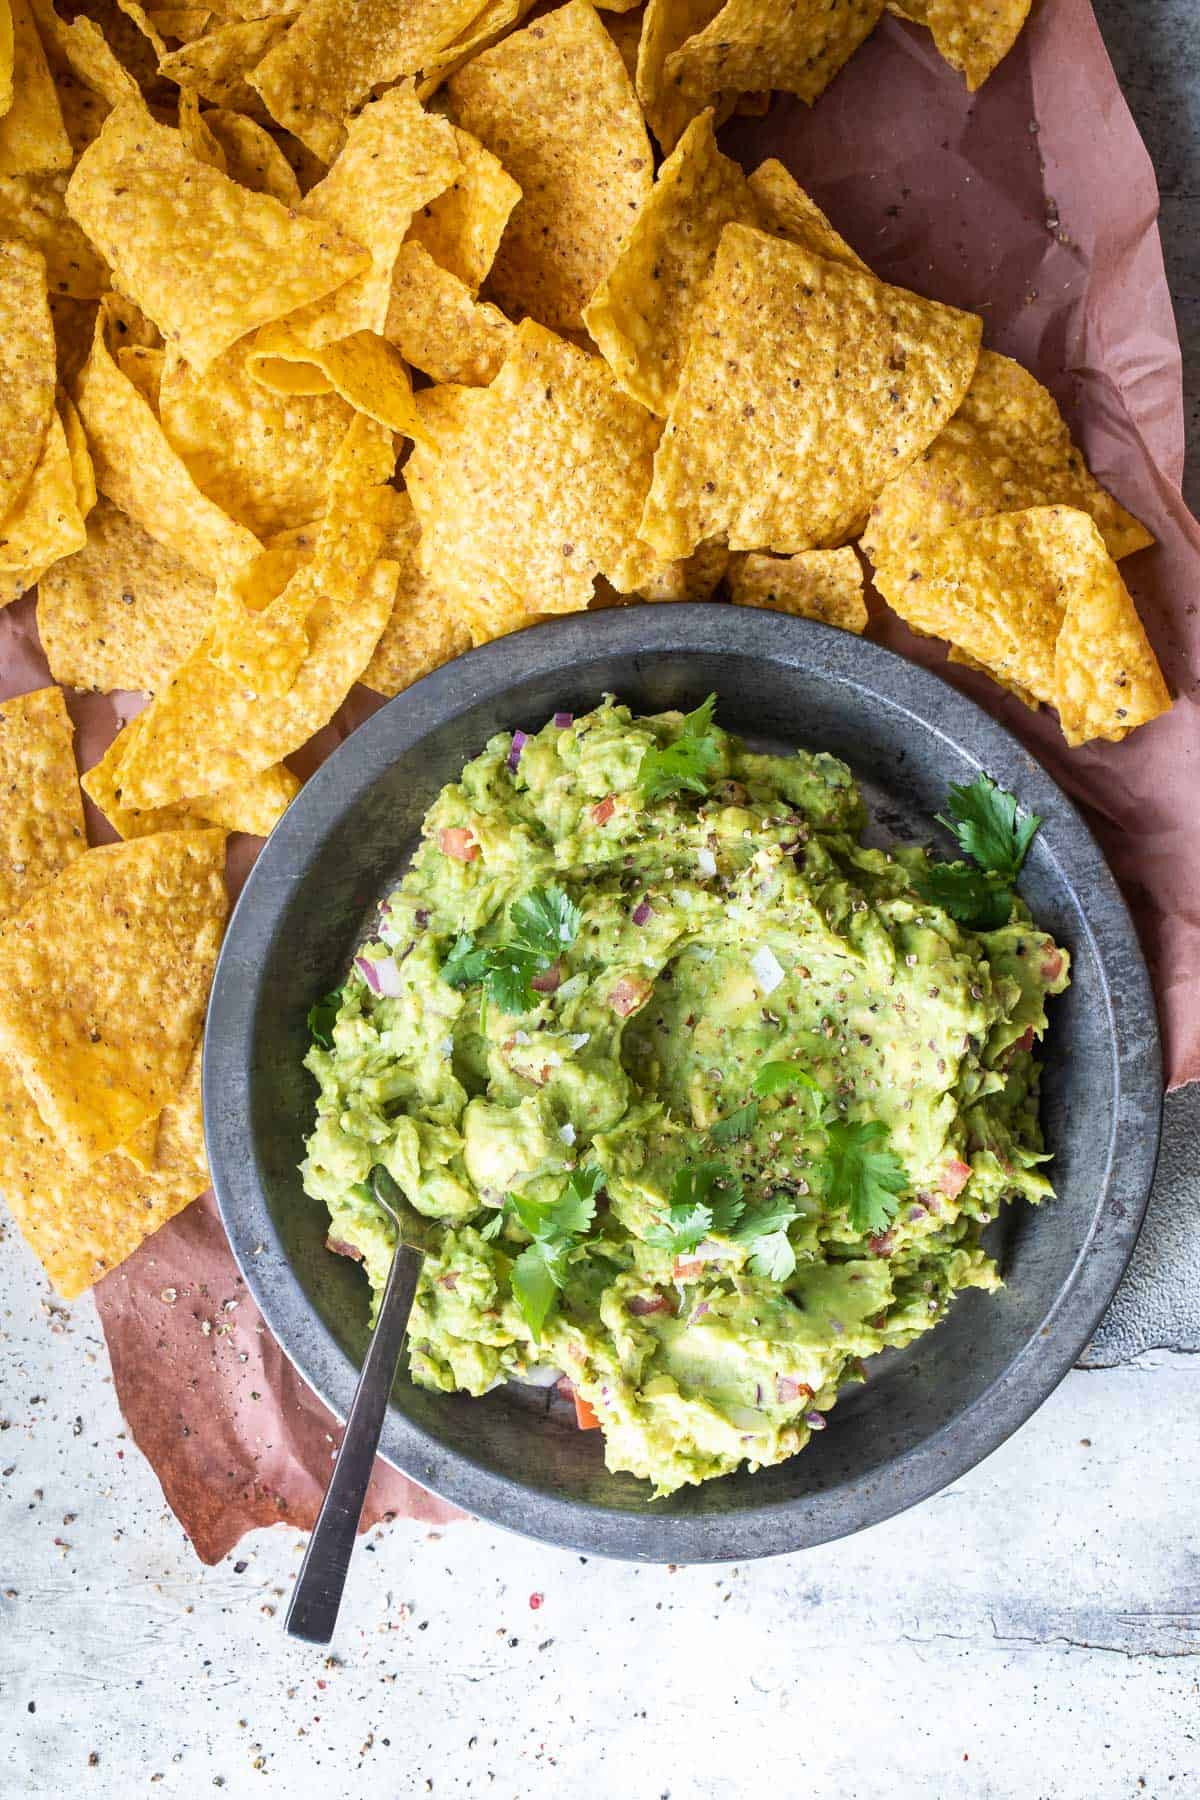 grilled avocado guacamole with chips